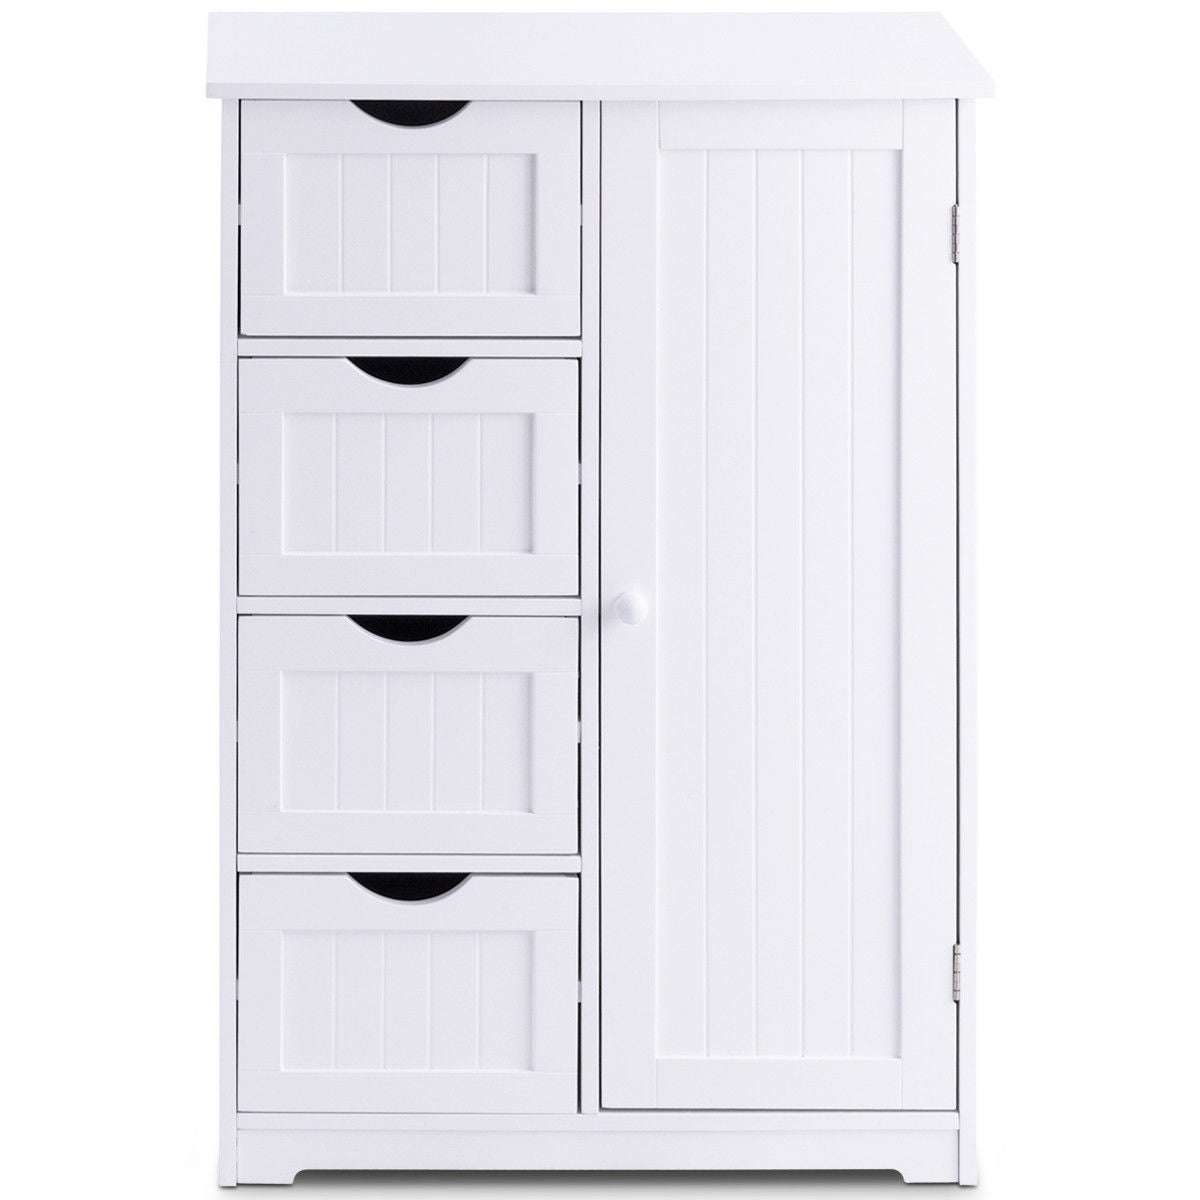 rectangular three drawers tall bathroom door white bullet four optronk cabin high wooden drawer low swing with based and cabinet storage handle small cool legs